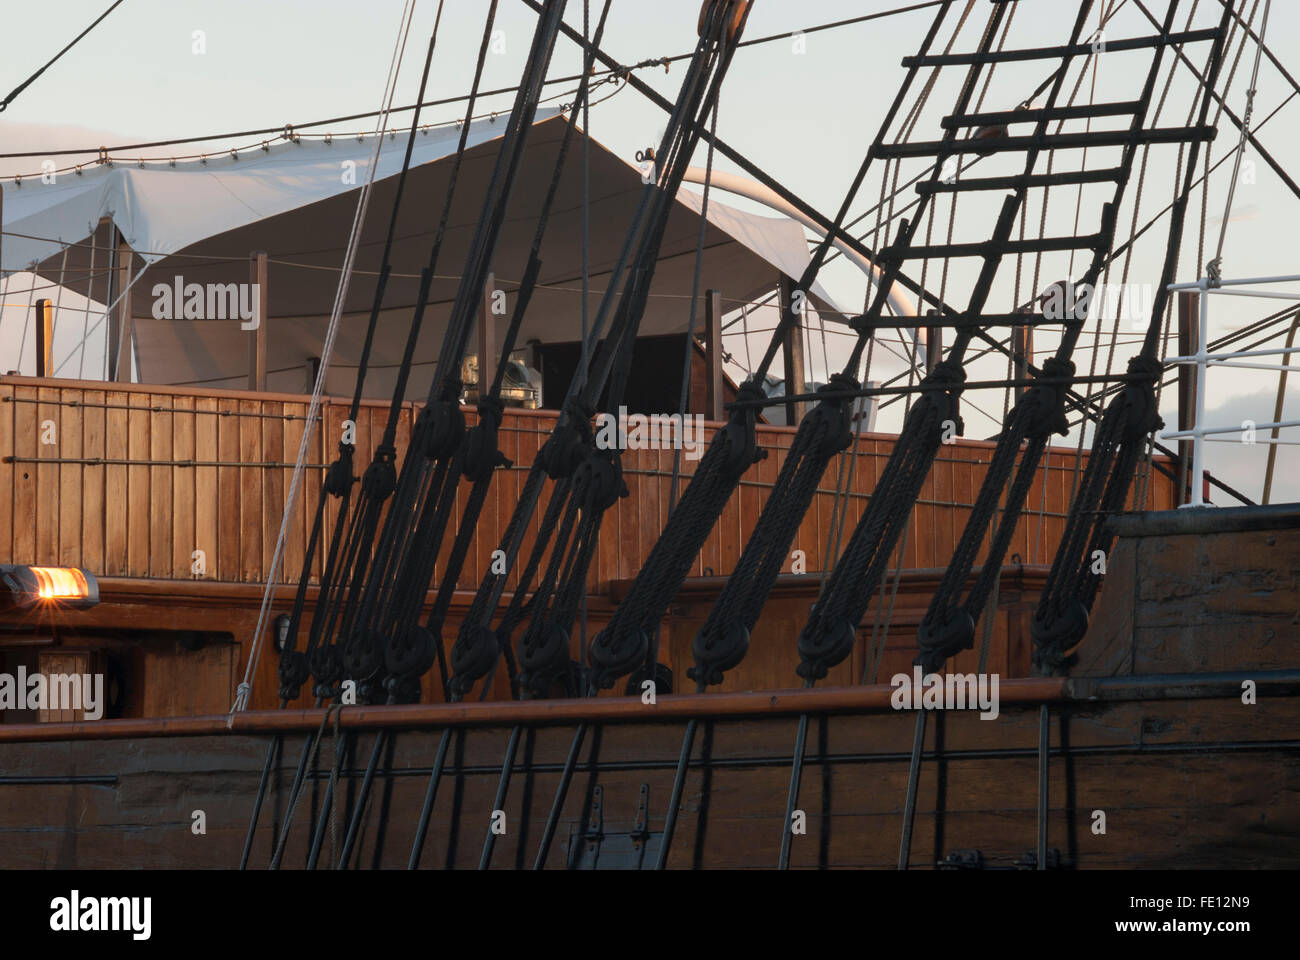 Quarterdeck of RRS Discovery seen through rigging, Discovery Point, Dundee, Scotland, UK. Stock Photo